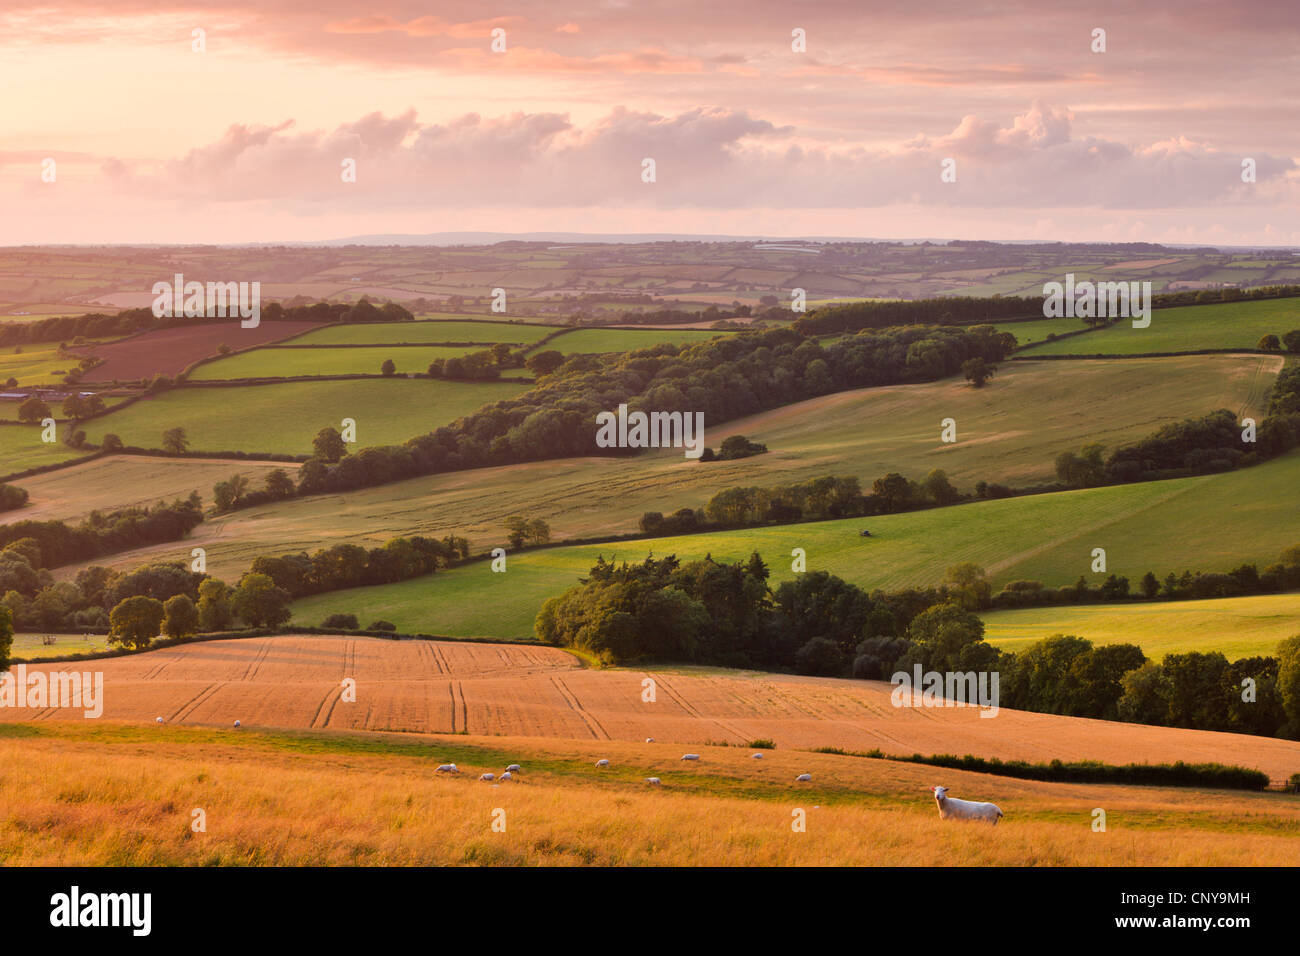 Grazing sheep and crop fields near Stockleigh Pomeroy, mid Devon, England. Summer (July) 2009 - Stock Image